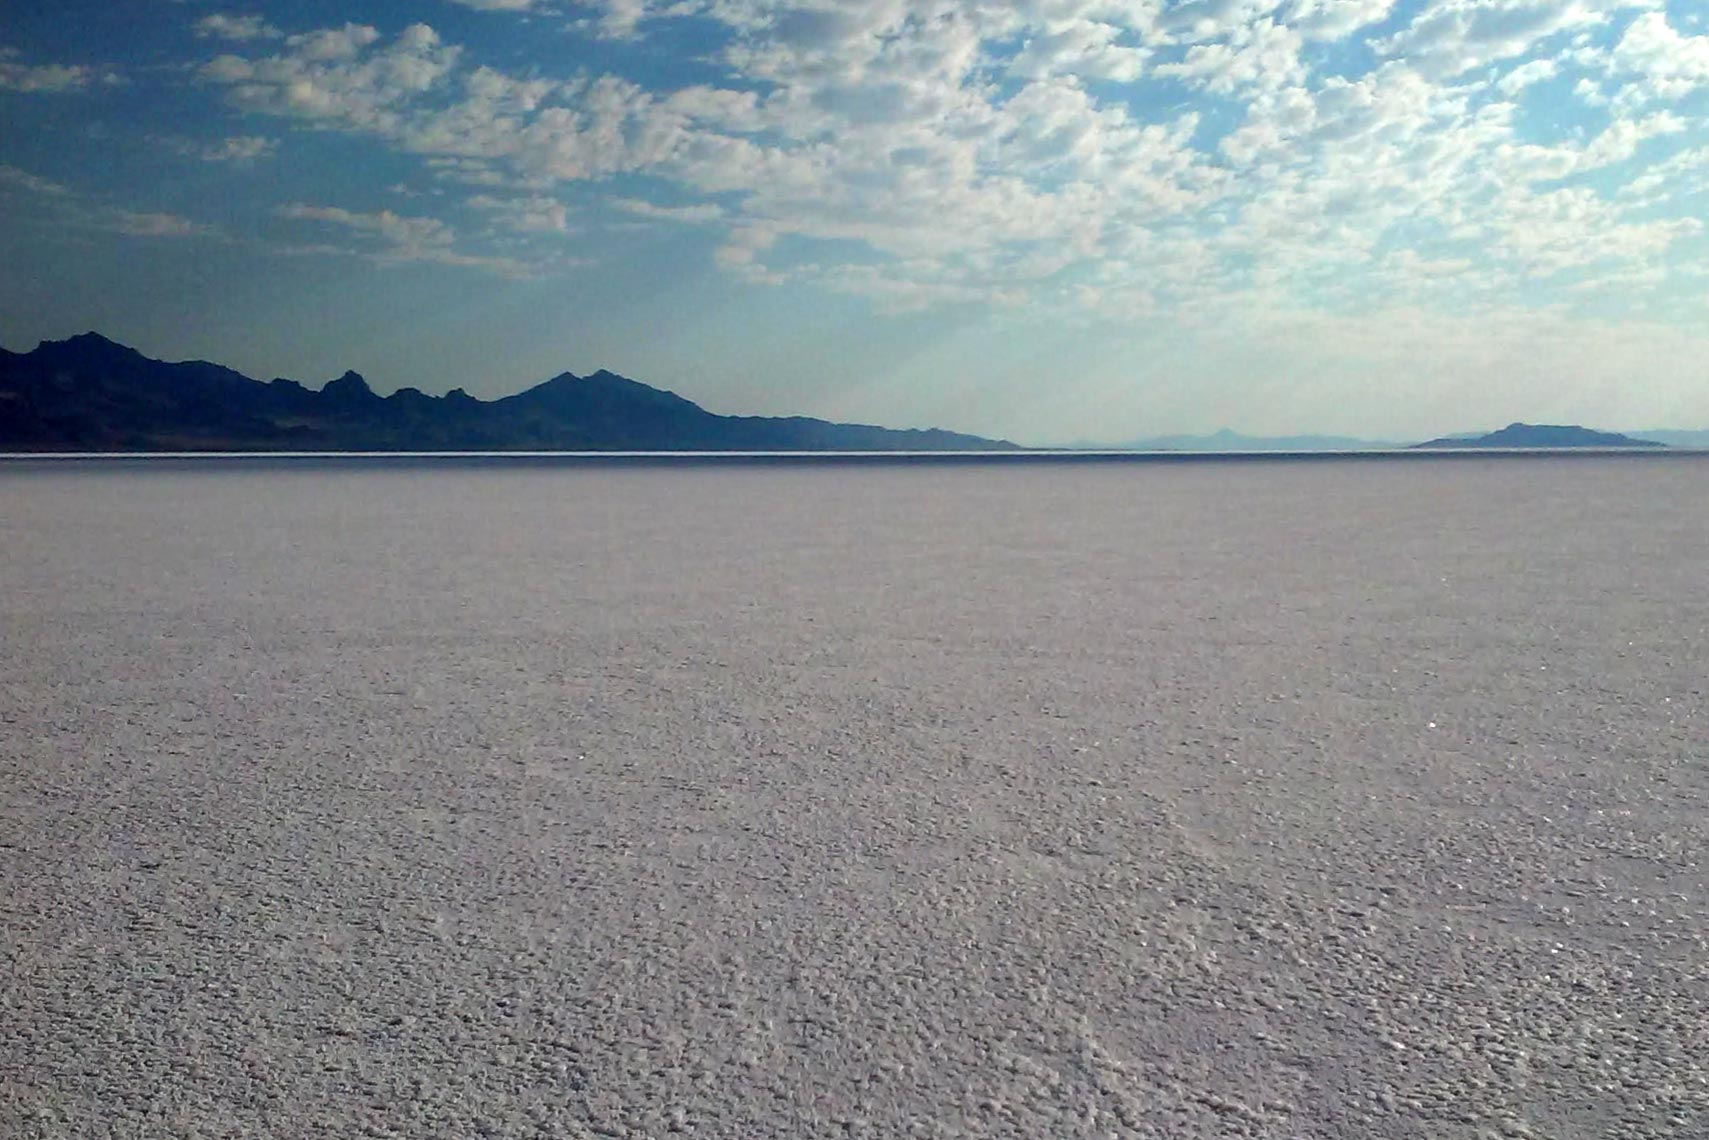 Racing Likely to Return to Bonneville Salt Flats This Year